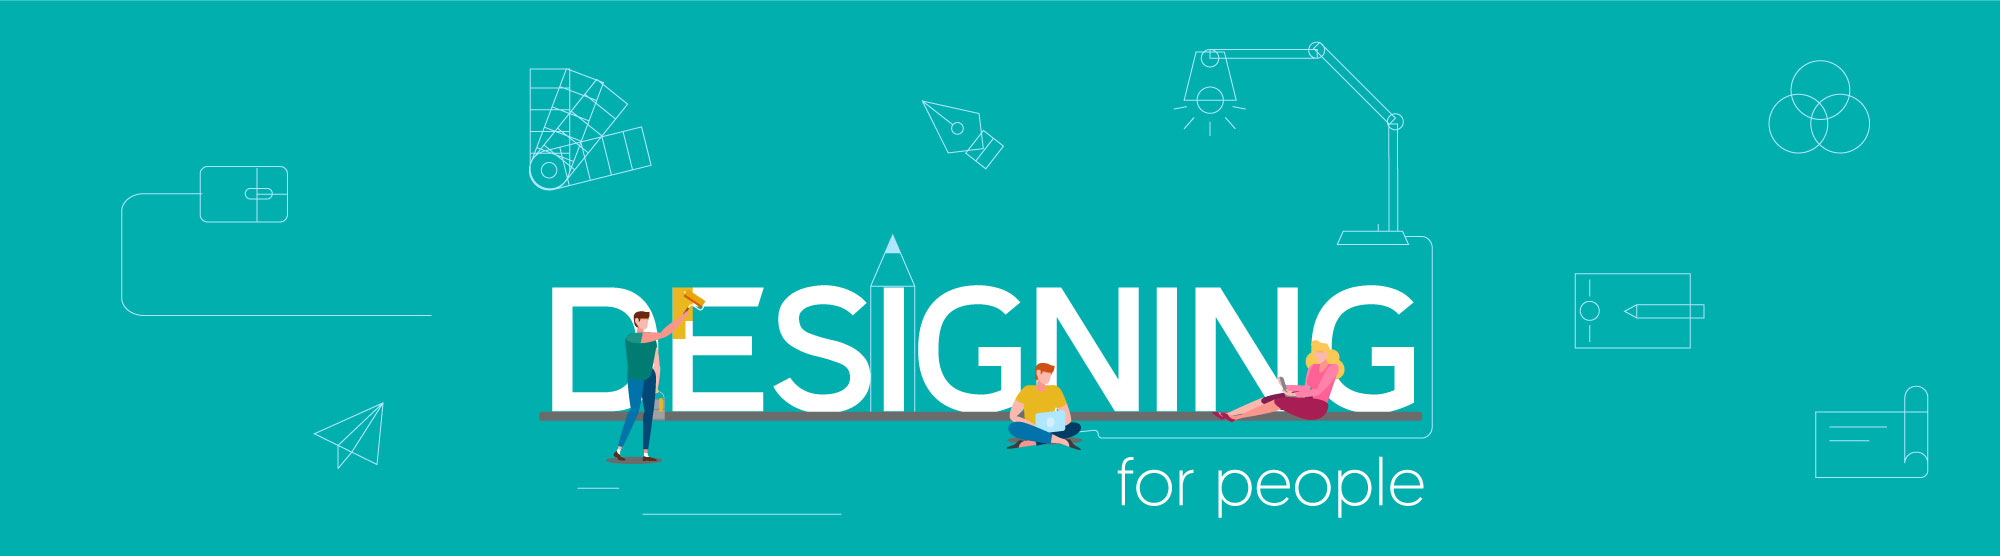 people engaging with design elements with the heading